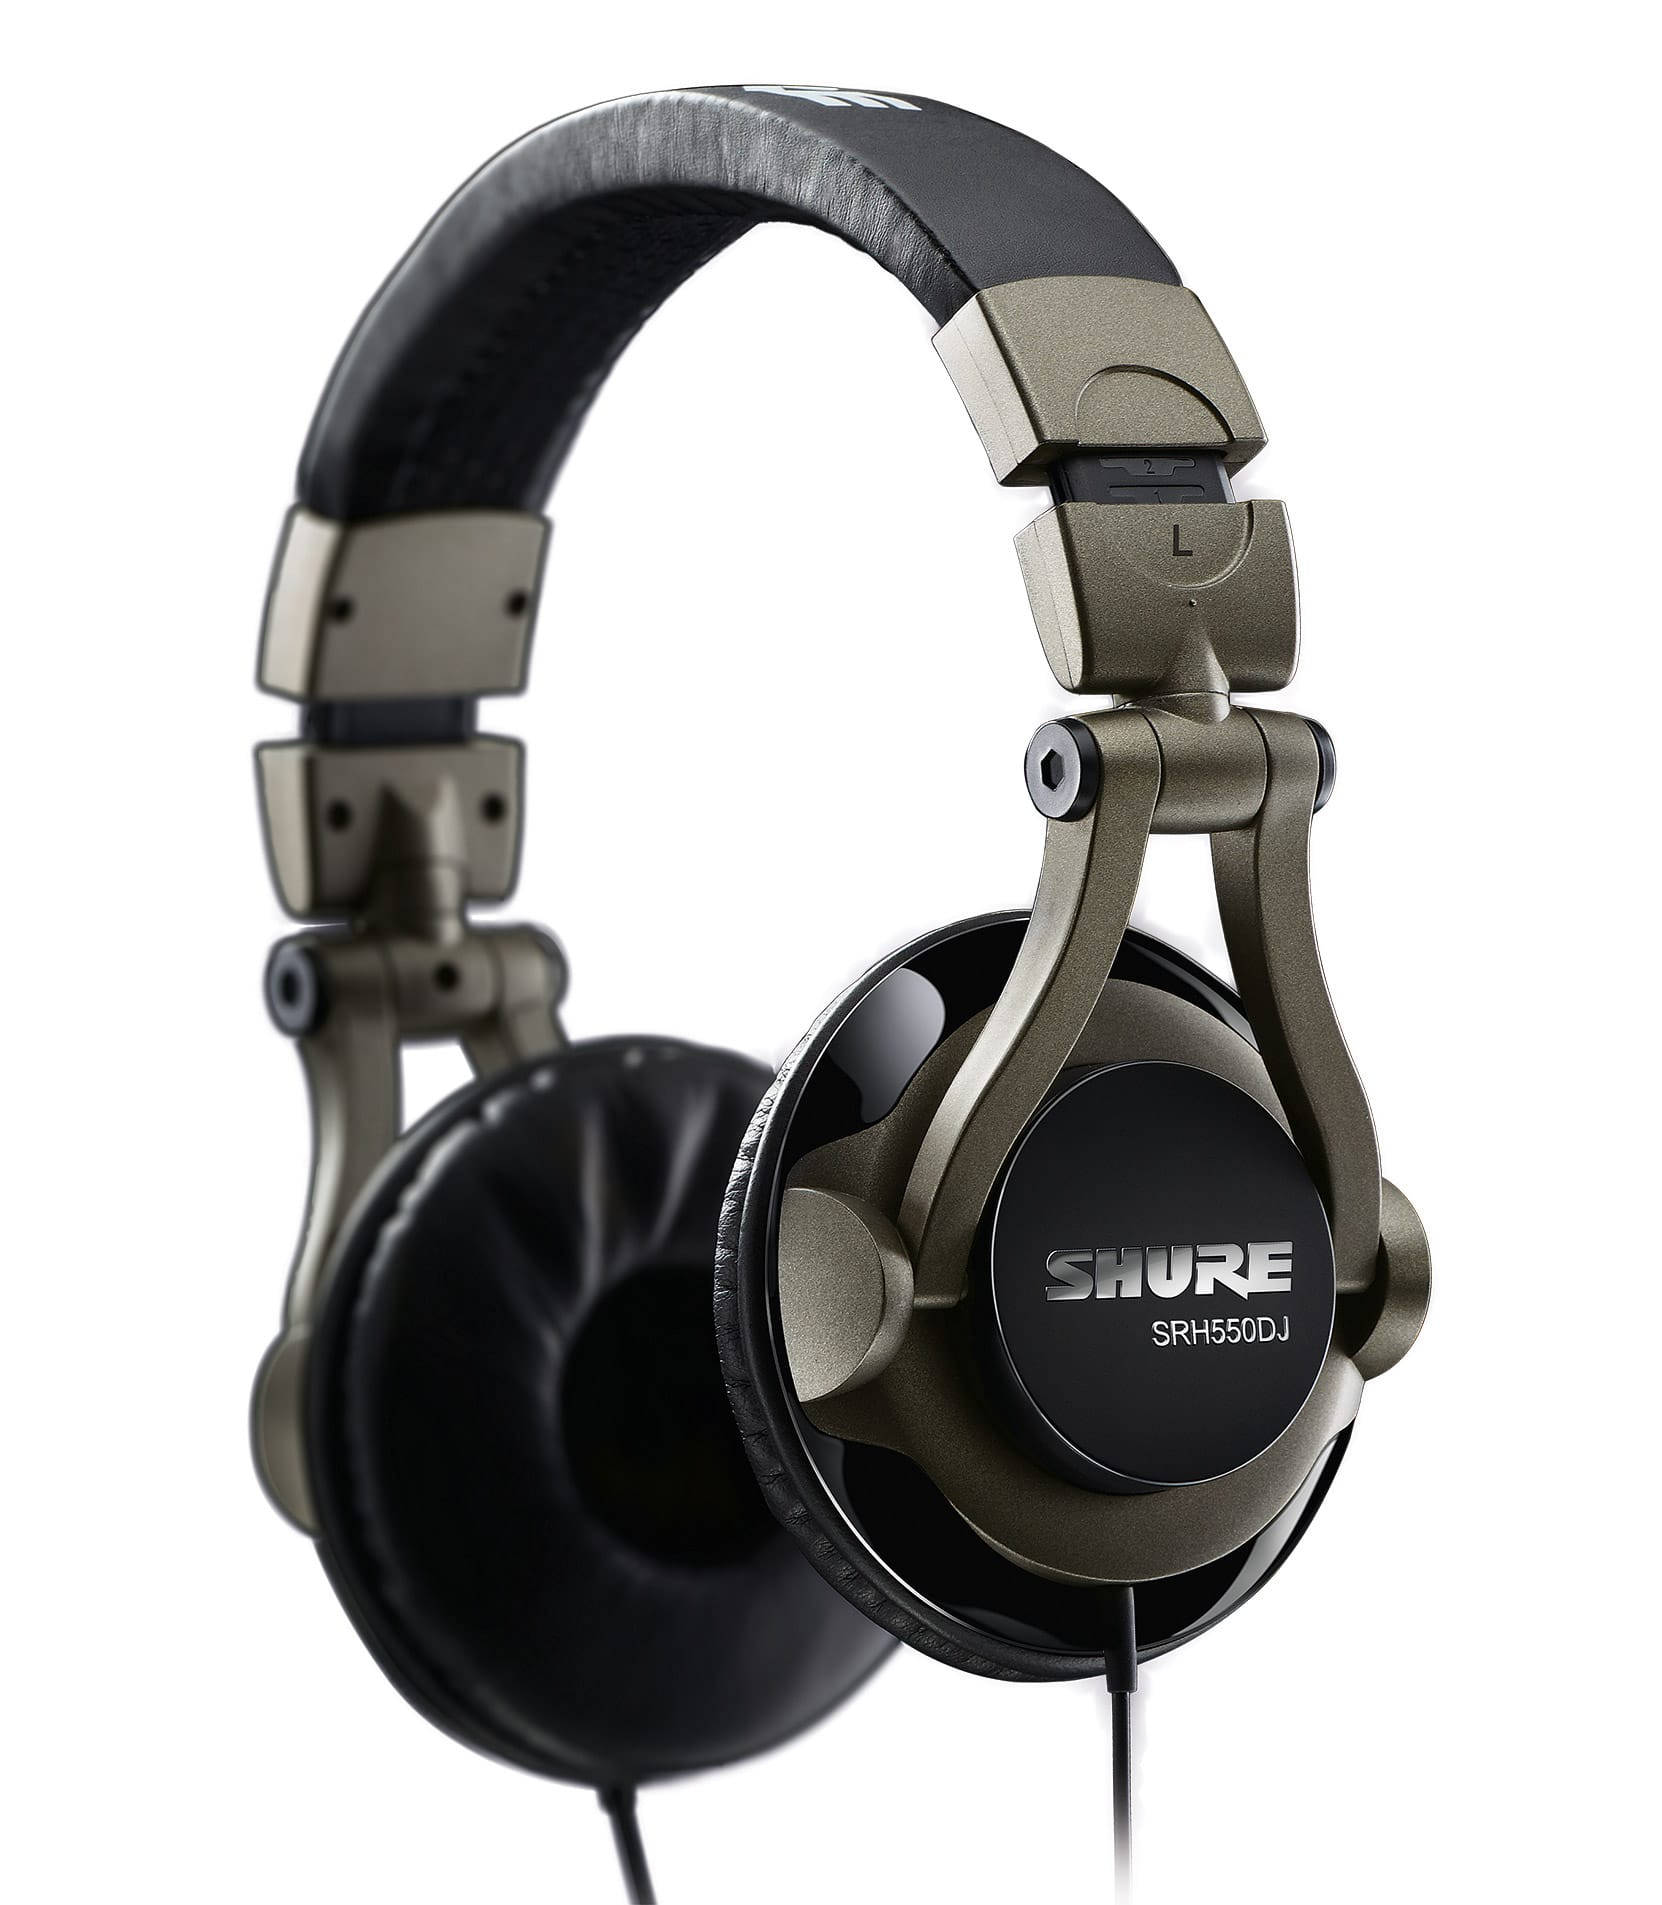 Buy Shure - SRH550DJ E Professional Quality DJ Headphones